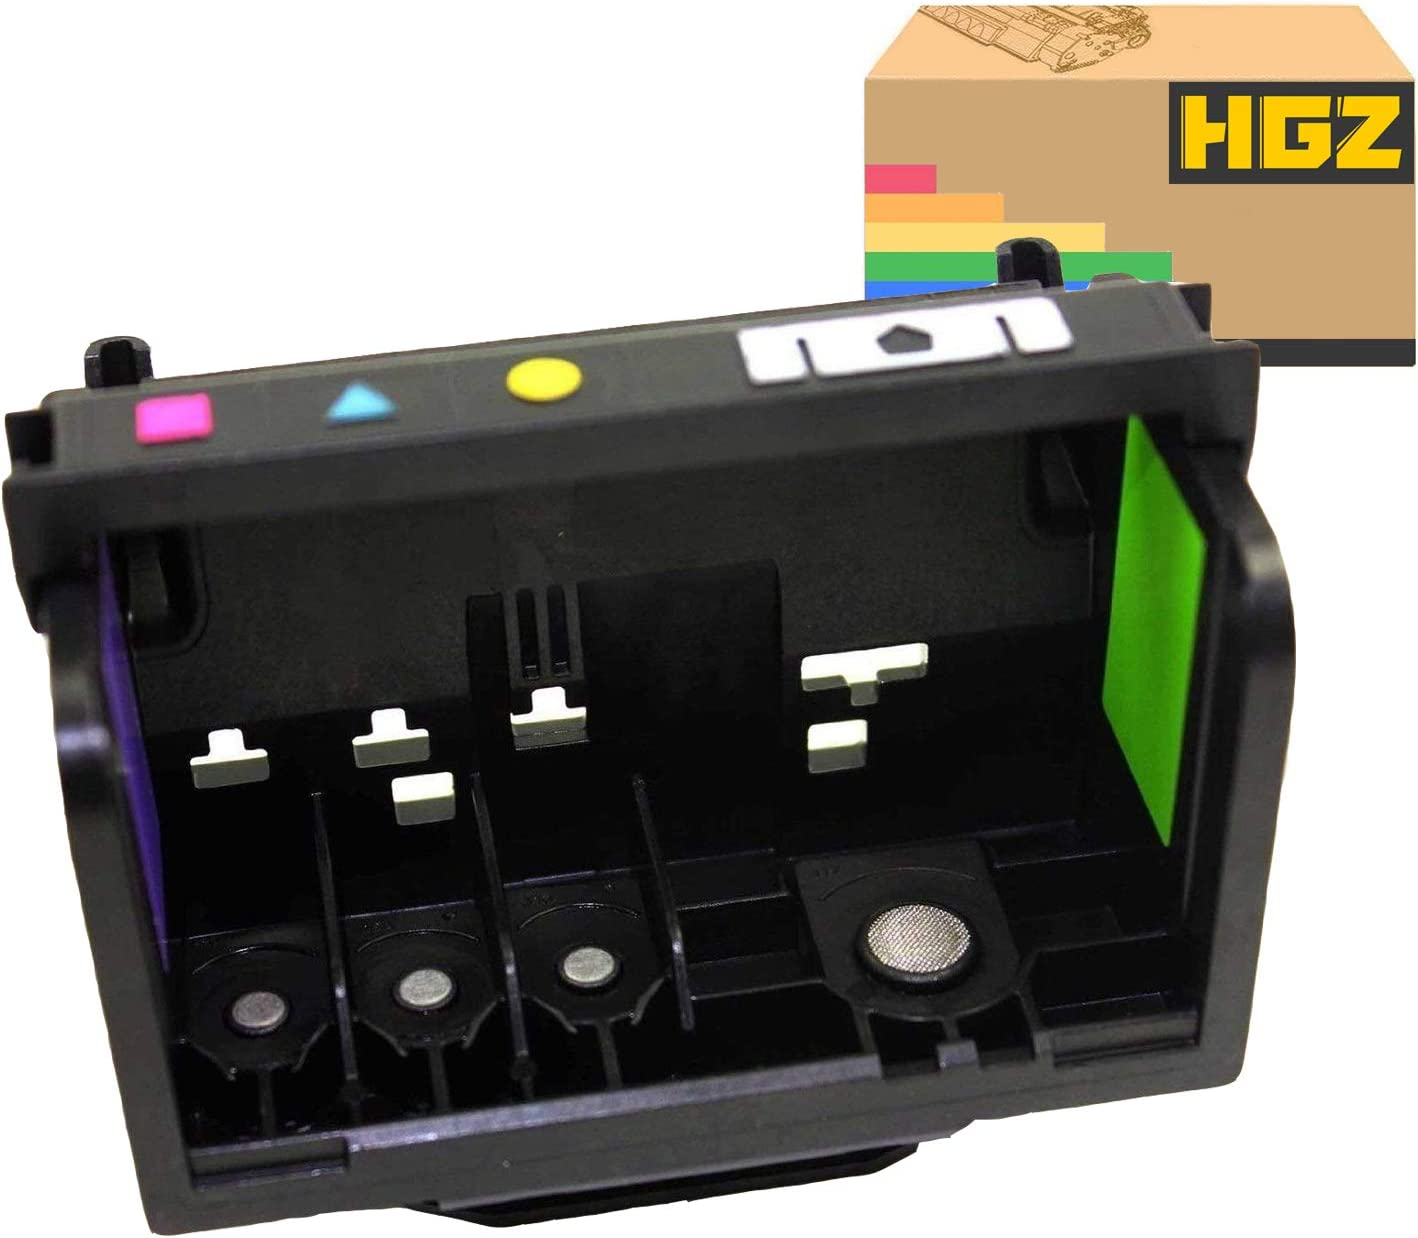 HGZ 1 Pack Remanufactured Printer Head Replacement for 920 Printhead 4 Slot Compatible for HP OfficeJet 6000 OfficeJet 6500 OfficeJet 6500A OfficeJet 7000 OfficeJet 7500A Printer